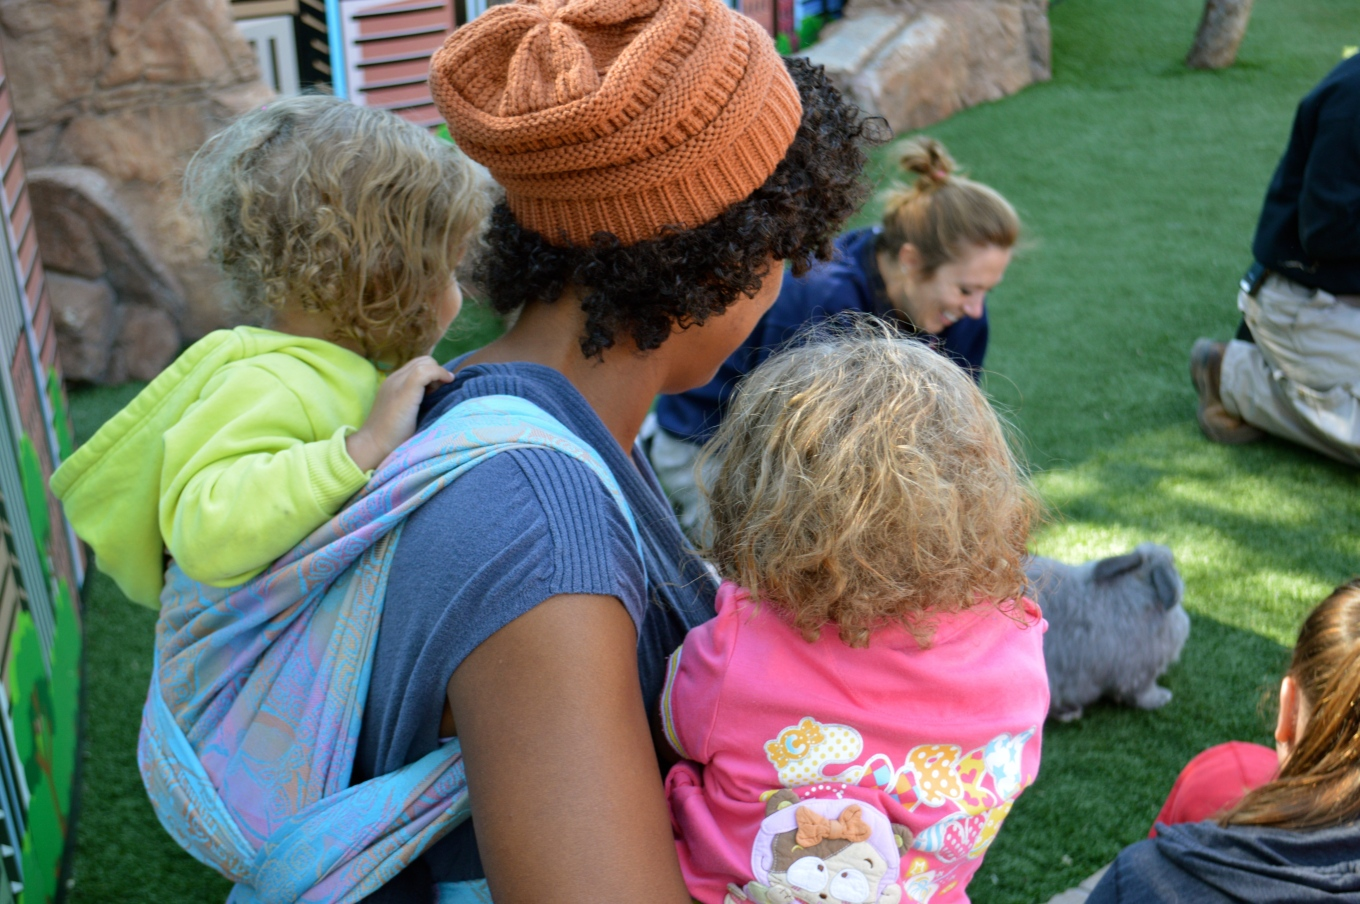 Momma and two toddlers observe grey giant Flemish rabbit and other animals not in view. Rabbit is in zookeeper's hands, hopping on green artificial turf grass. Momma wears one toddler and other light brown, blond haired toddler wears a pink sweater with a monkey sits in Momma's lap. Medium brown Momma with natural curly hair wears orange-brown knit cap and red lipstick. Her light brown, curly blond haired toddler wears a neon yellow hoodie. Baby is on Momma's back in a Double Hammock carry in a gradient orange to pink on pale blue background woven wrap with embossed jonquil flowers.